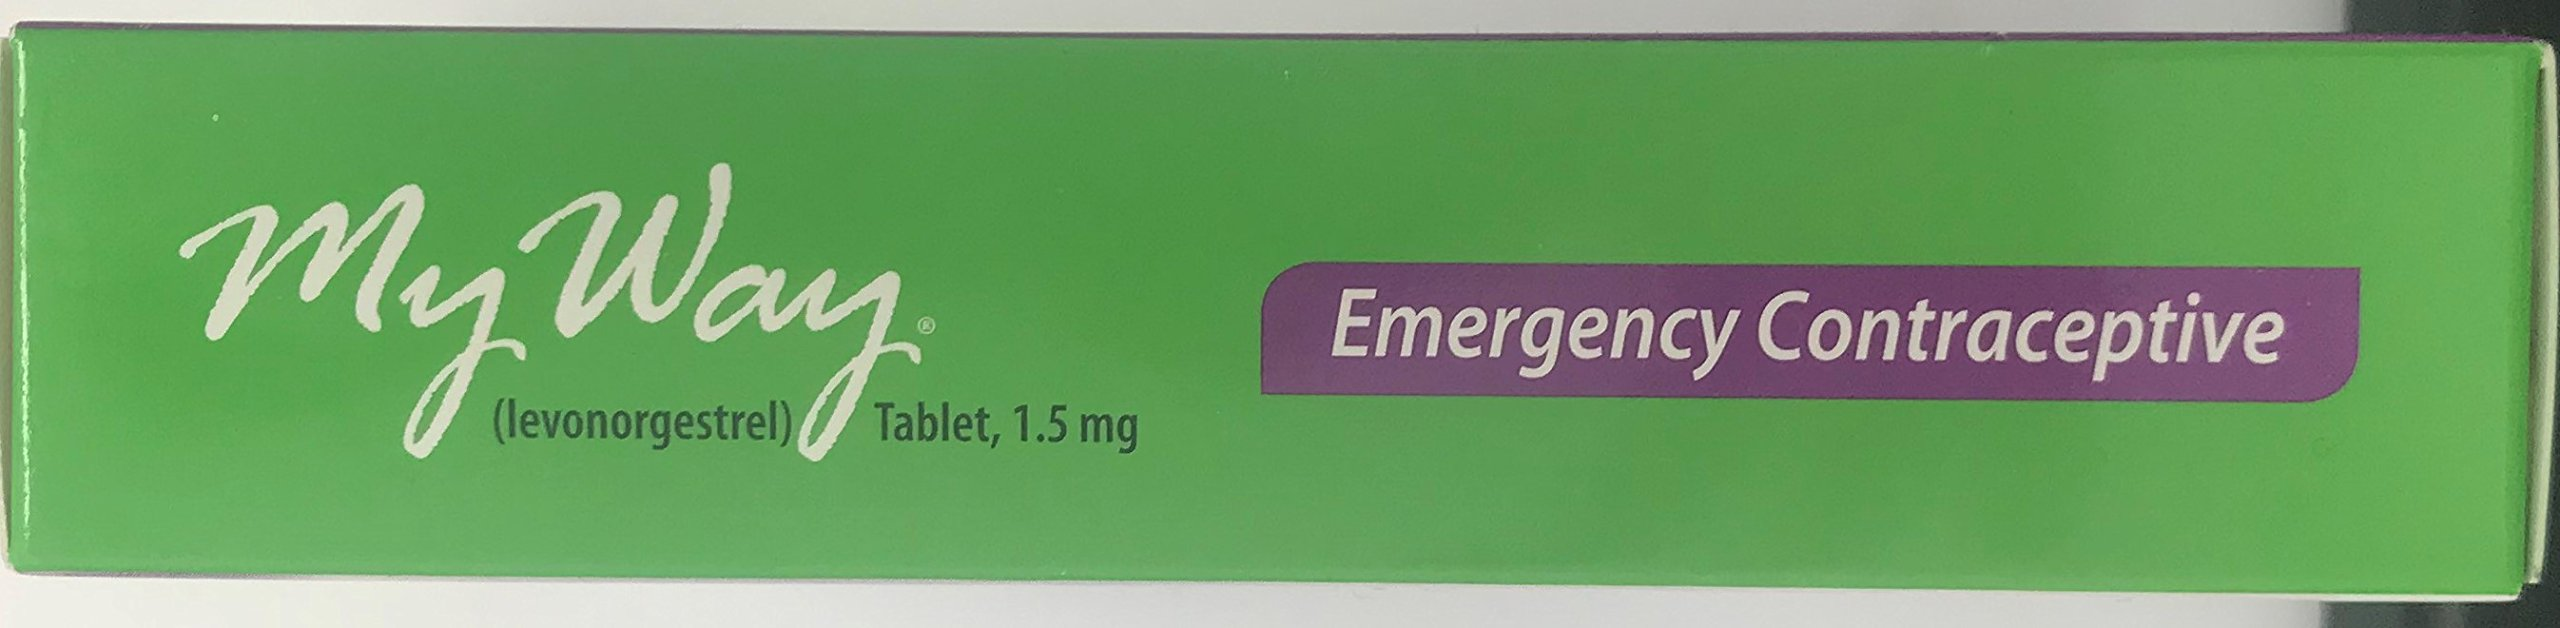 My Way Emergency Contraceptive 1 Tablet *Compare to Plan B One-Step* Set of 6 Pills by Gavis Pharmaceuticals